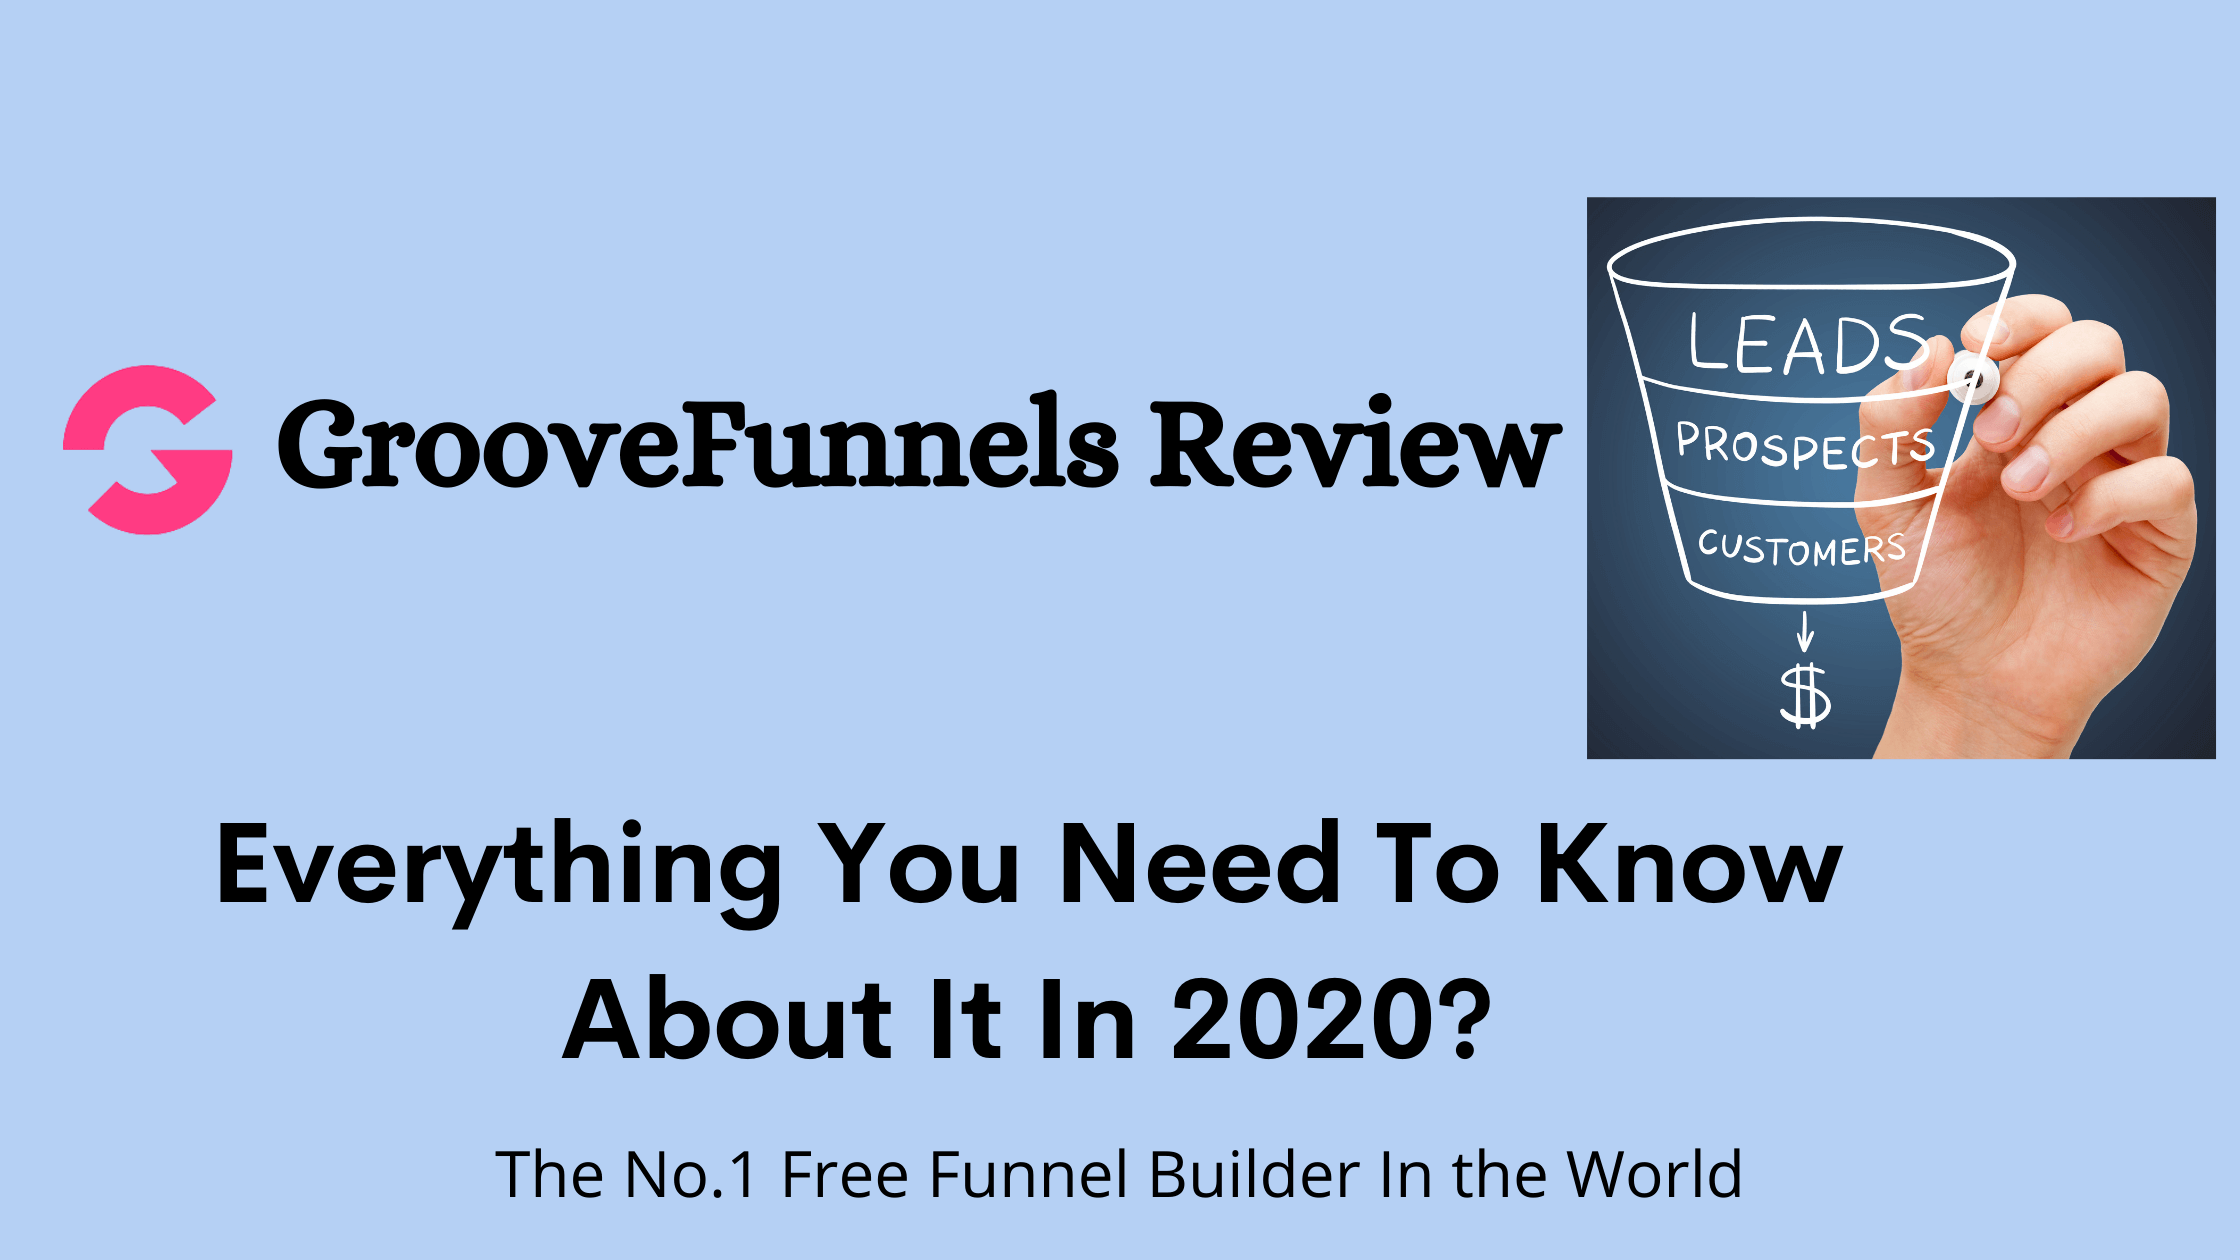 GrooveFunnels Review - Best Funnel Builder